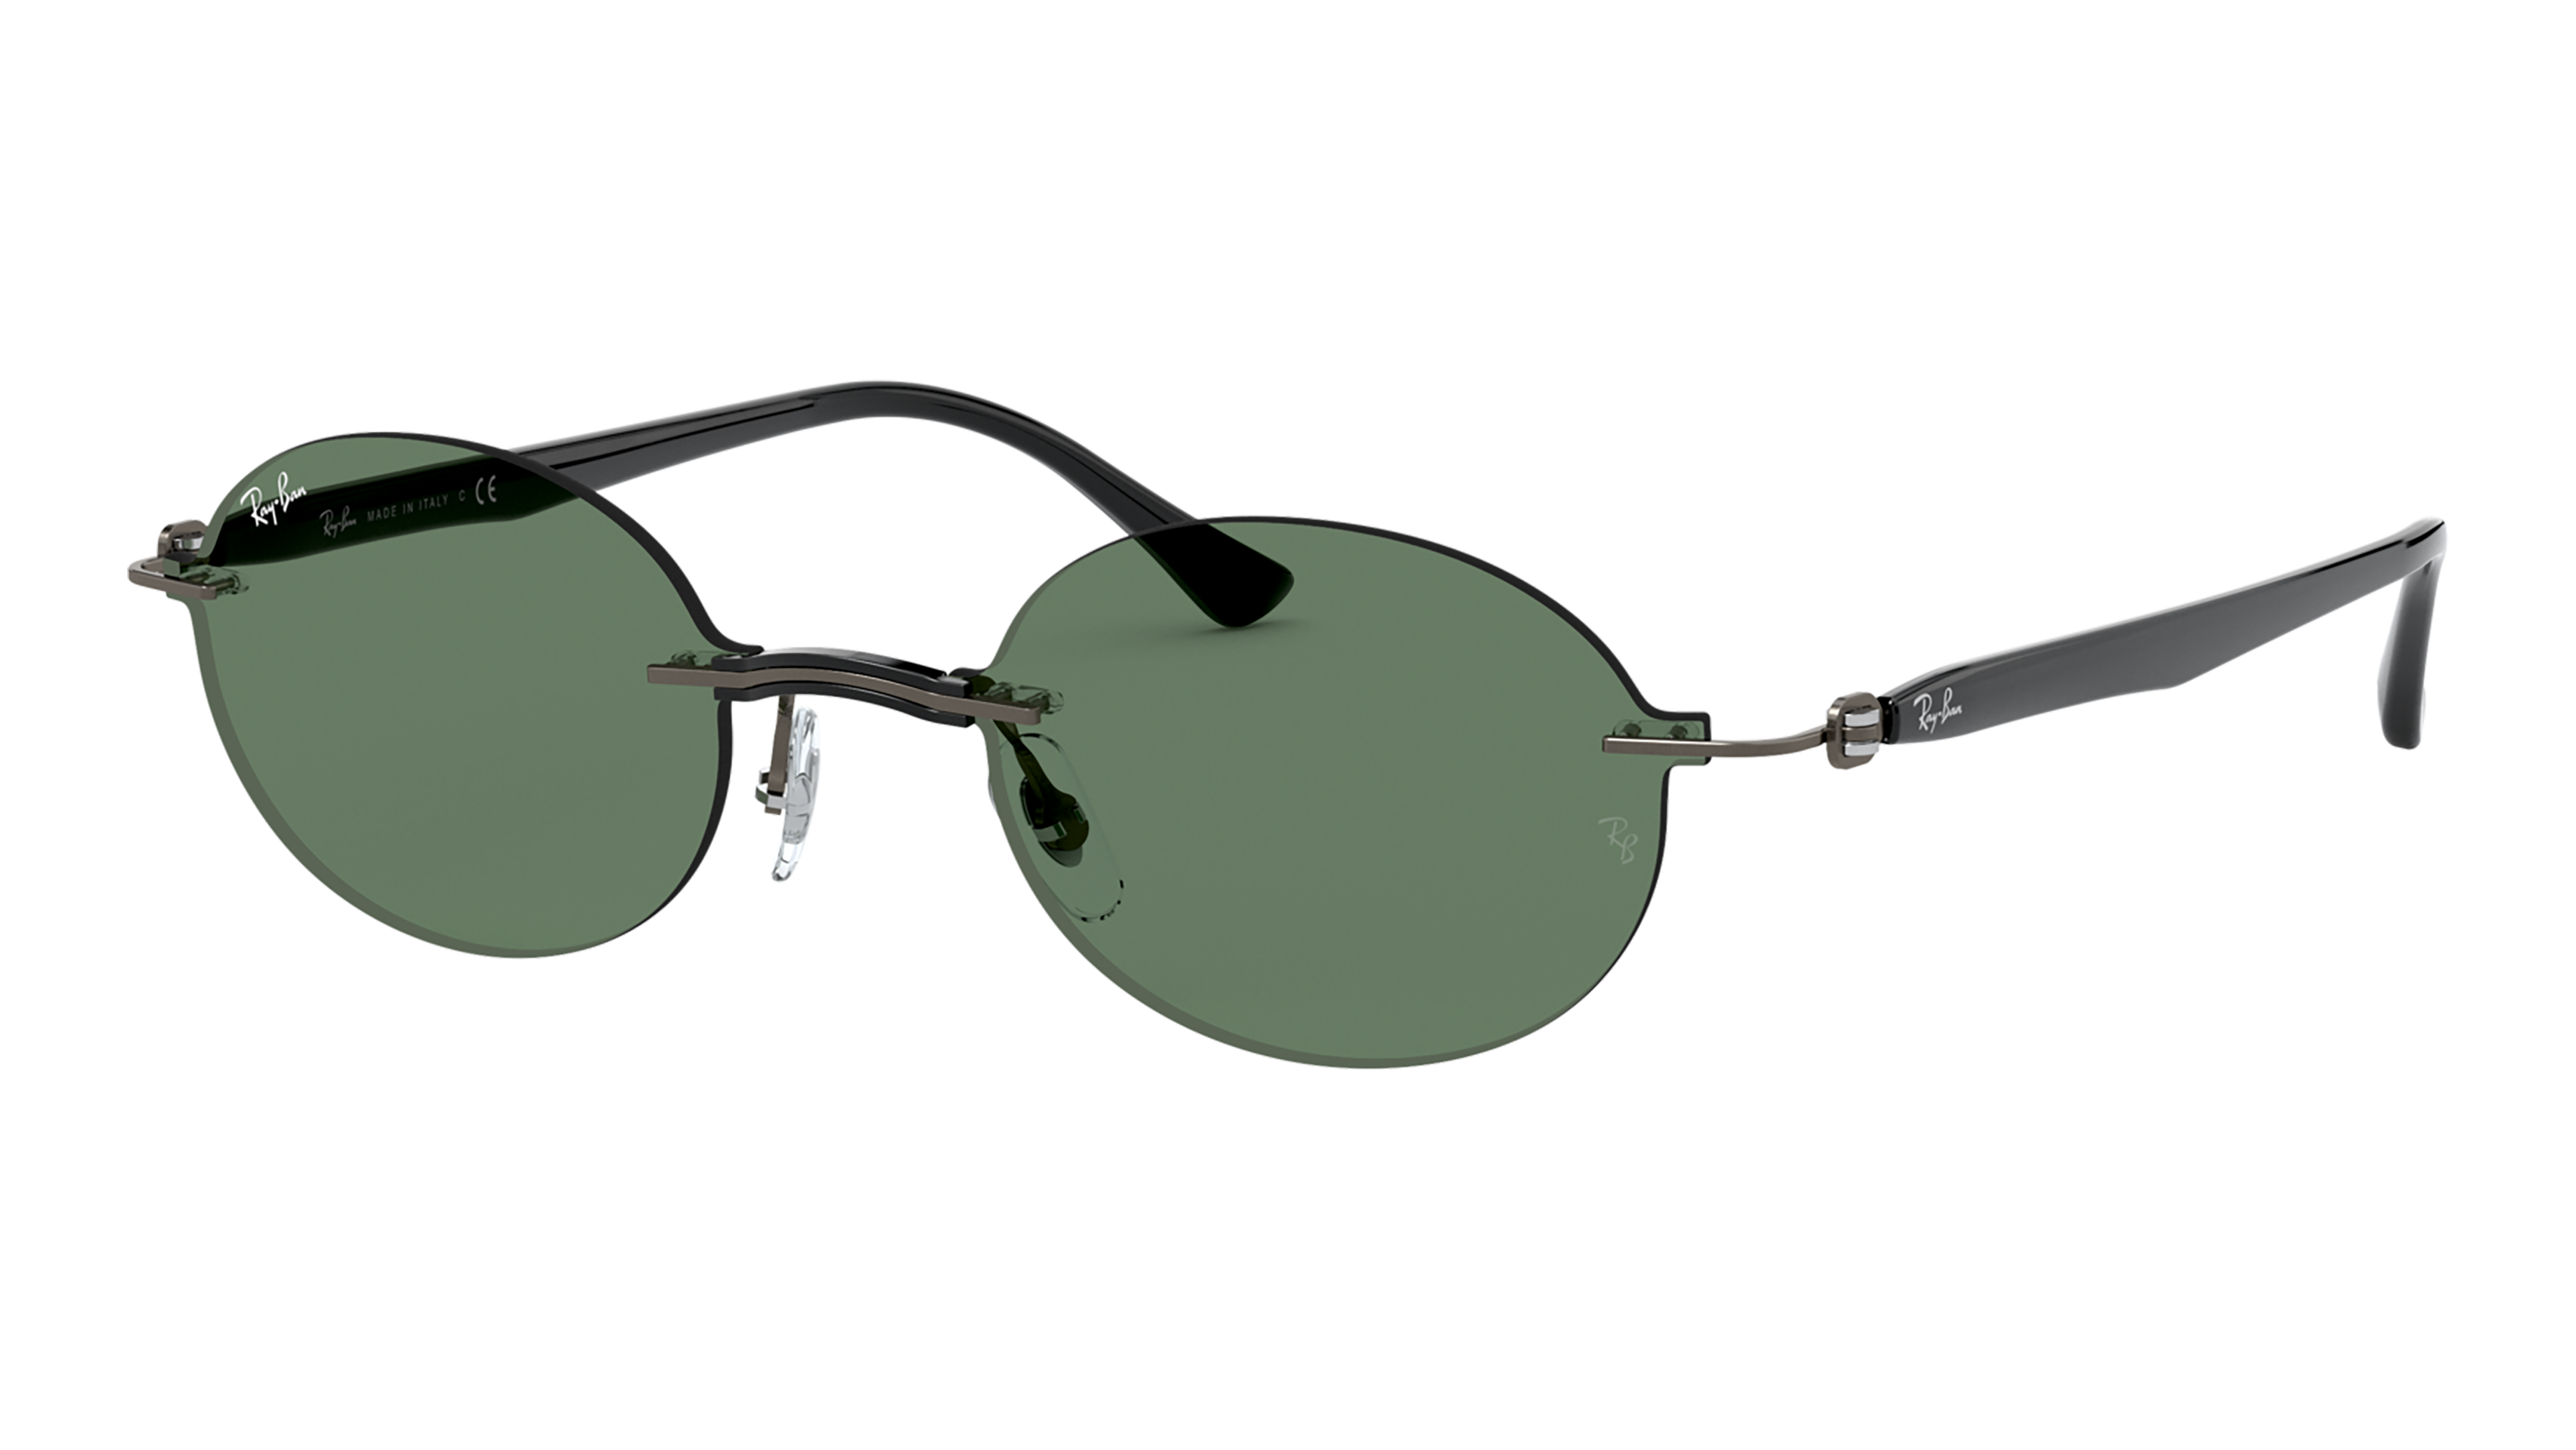 Angle_Left02 Ray-Ban Ray-Ban 0RB8060 154/71 54/15 Transparant, Zilver/Groen